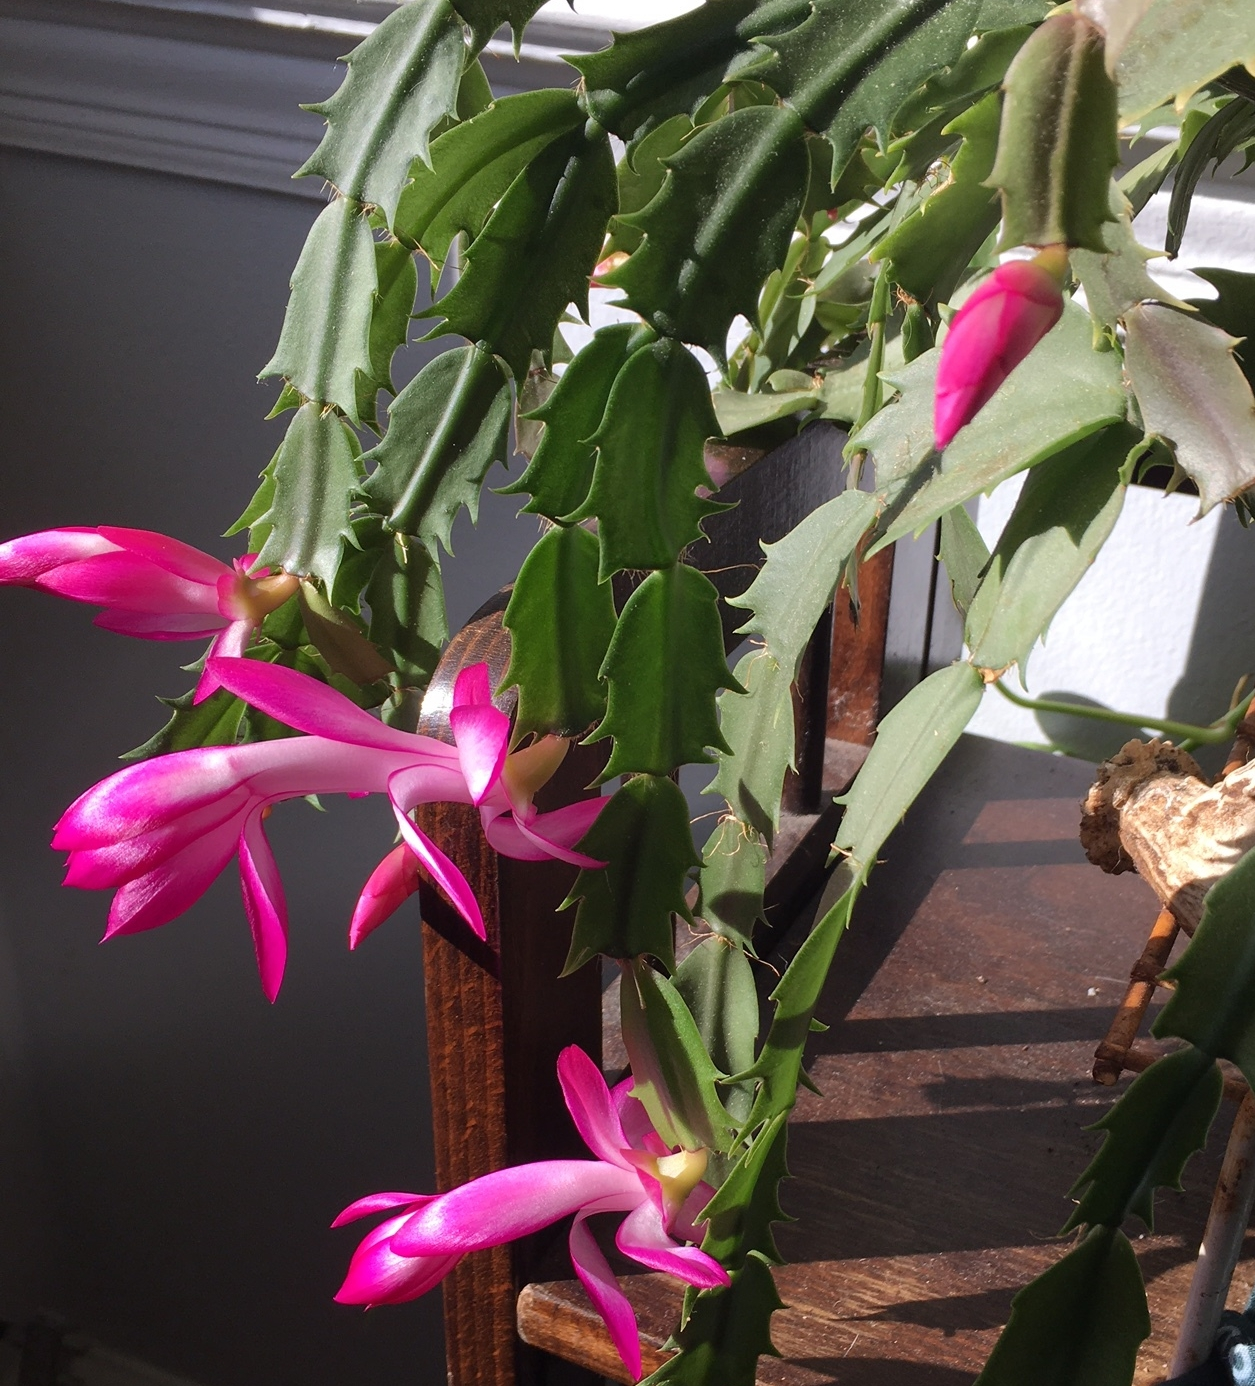 My christmas cactus blew up, too.